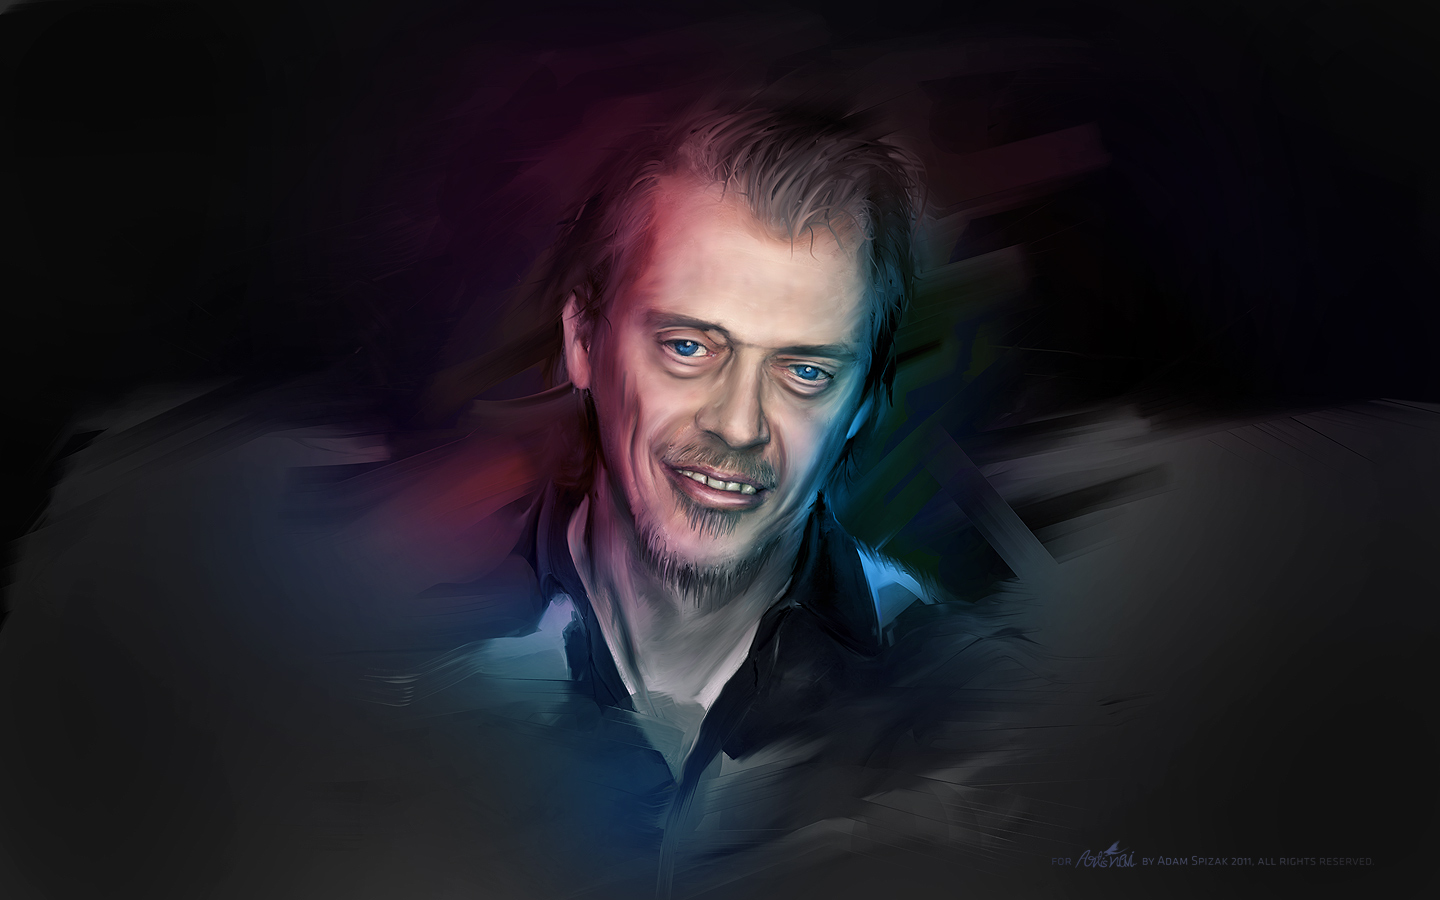 Steve Buscemi Wallpapers and Backgrounds Image